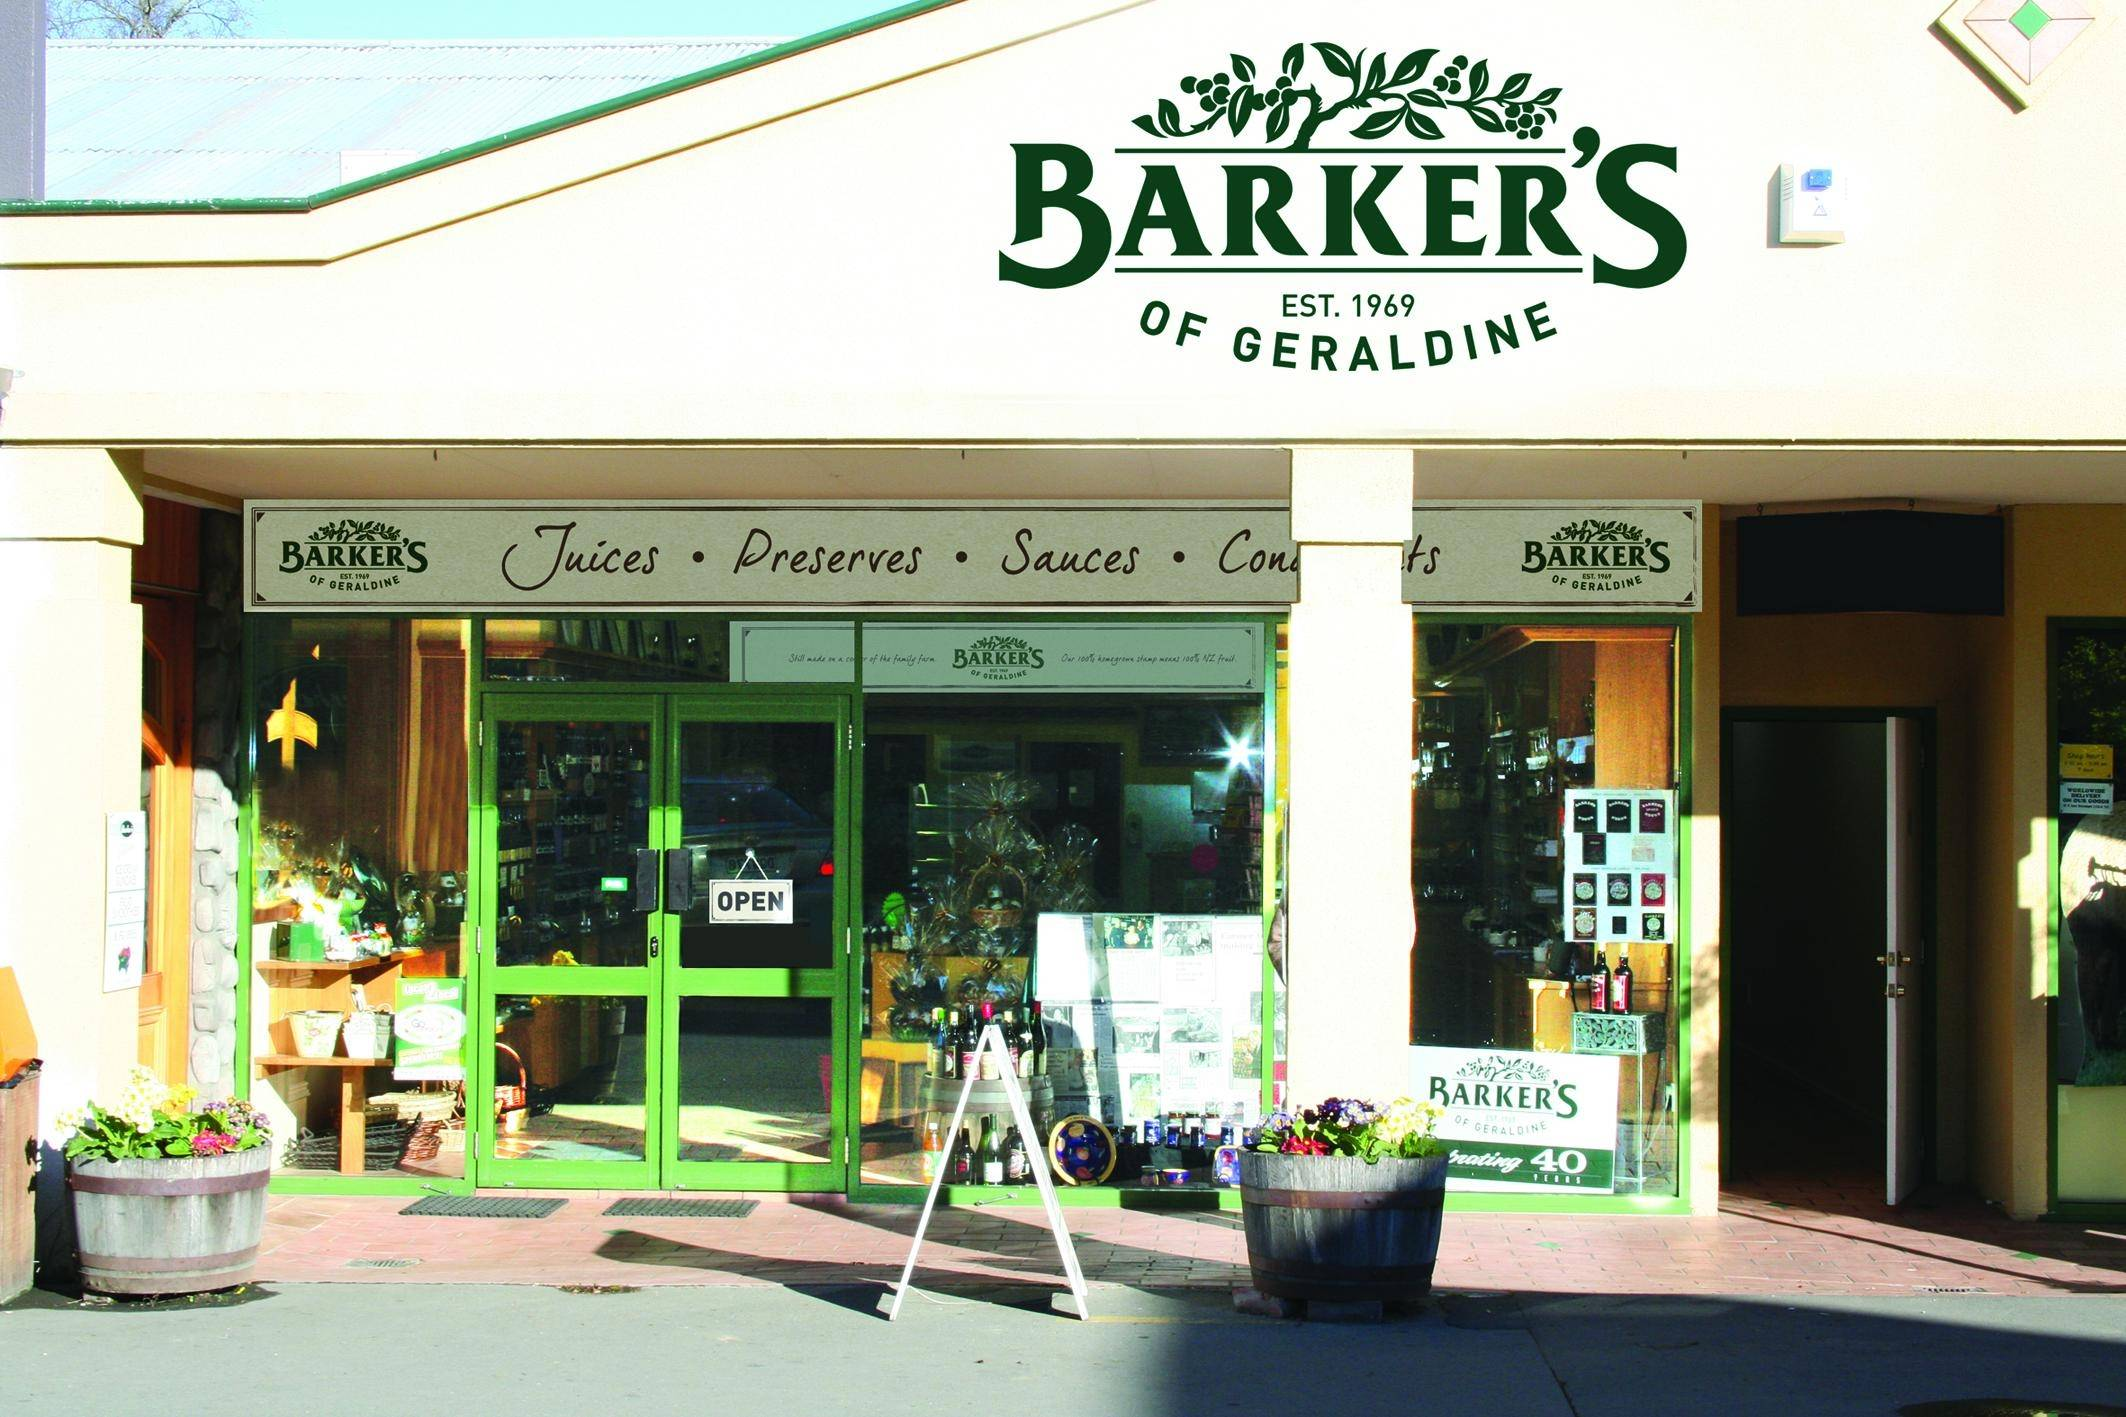 The Barker's Shop